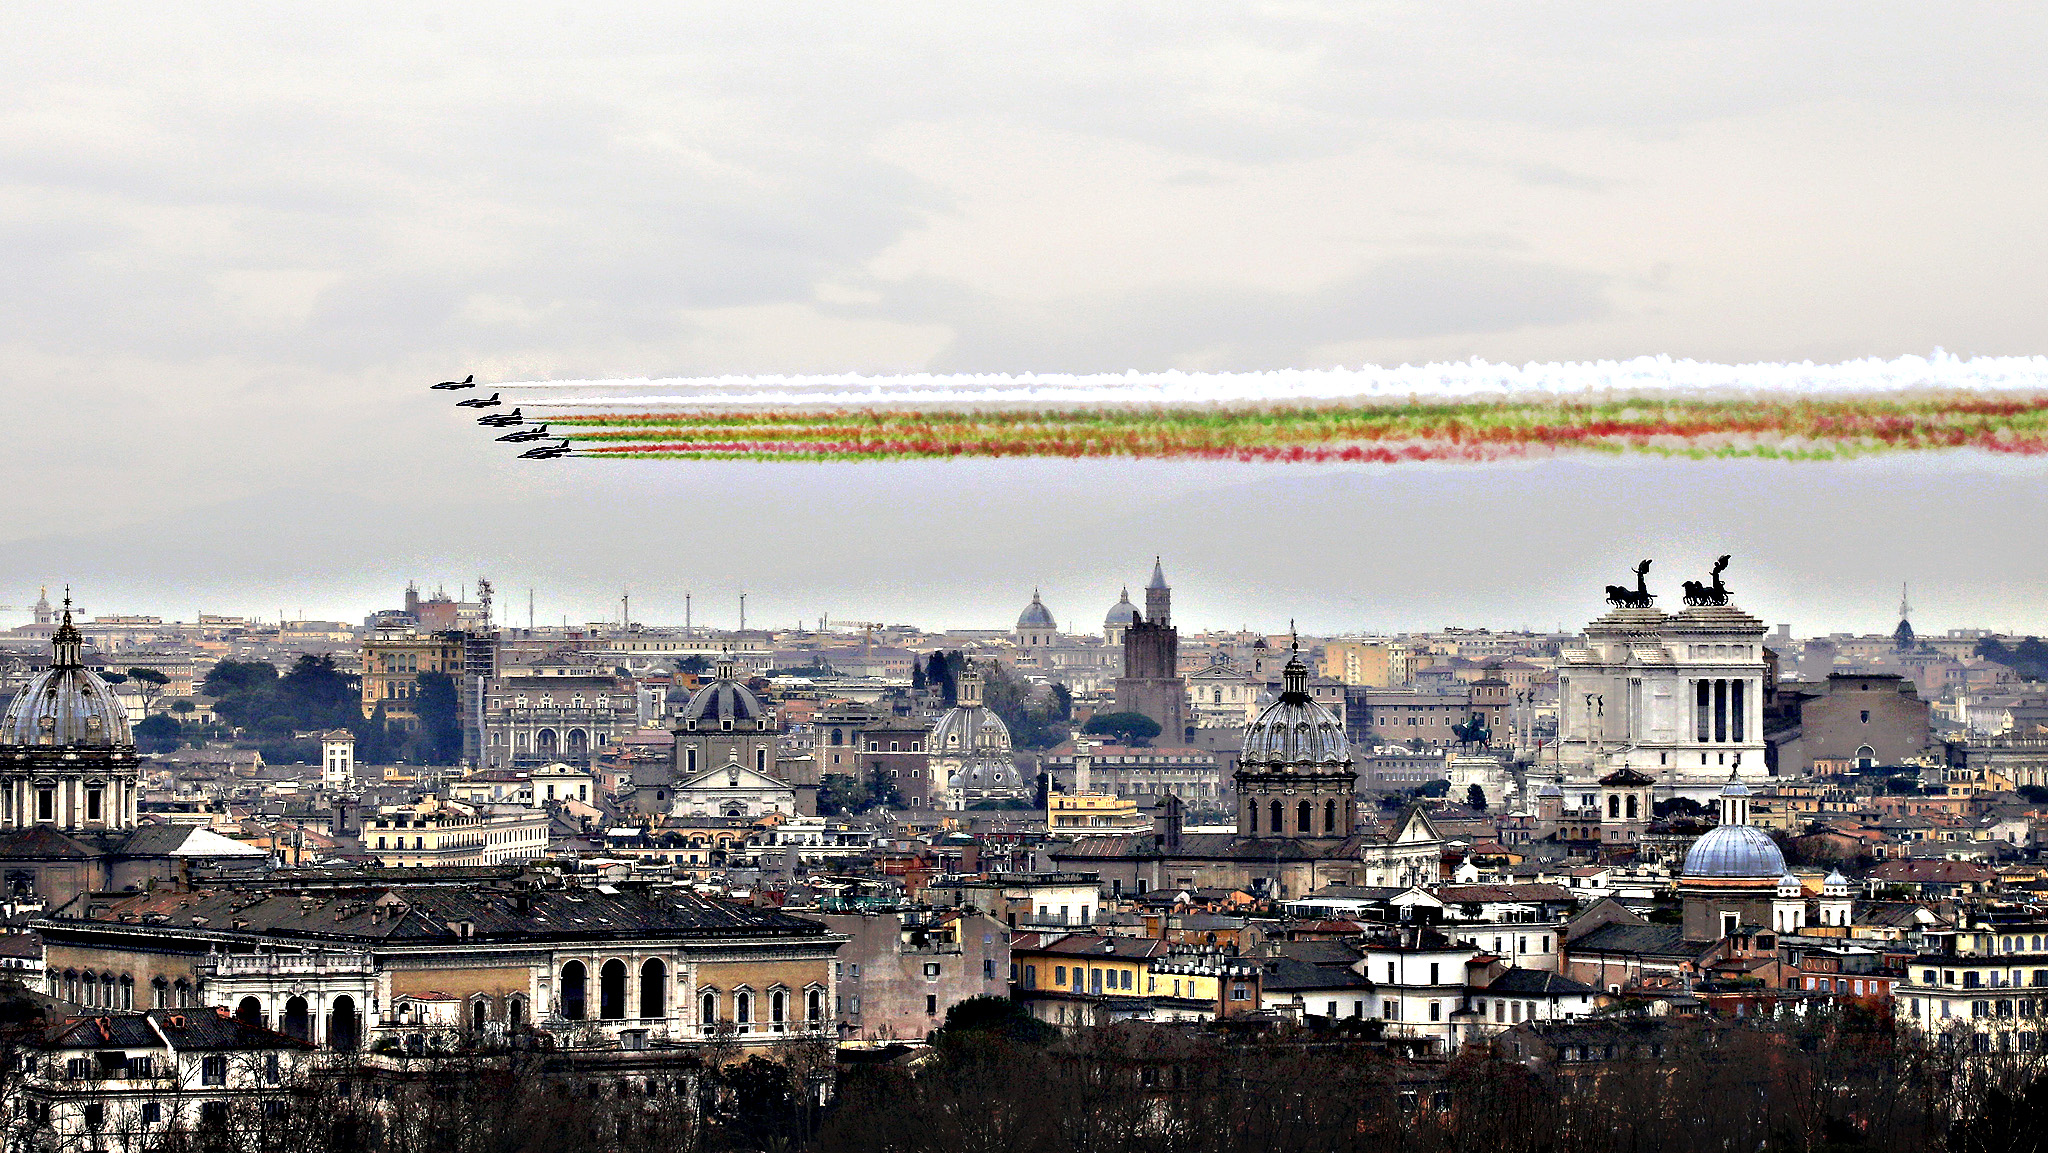 The 'Frecce Tricolori' Italian Air Force acrobatic squad fly over Rome, Tuesday, March 17, 2015 to mark the 154th anniversary of the Italian Unification in 1861